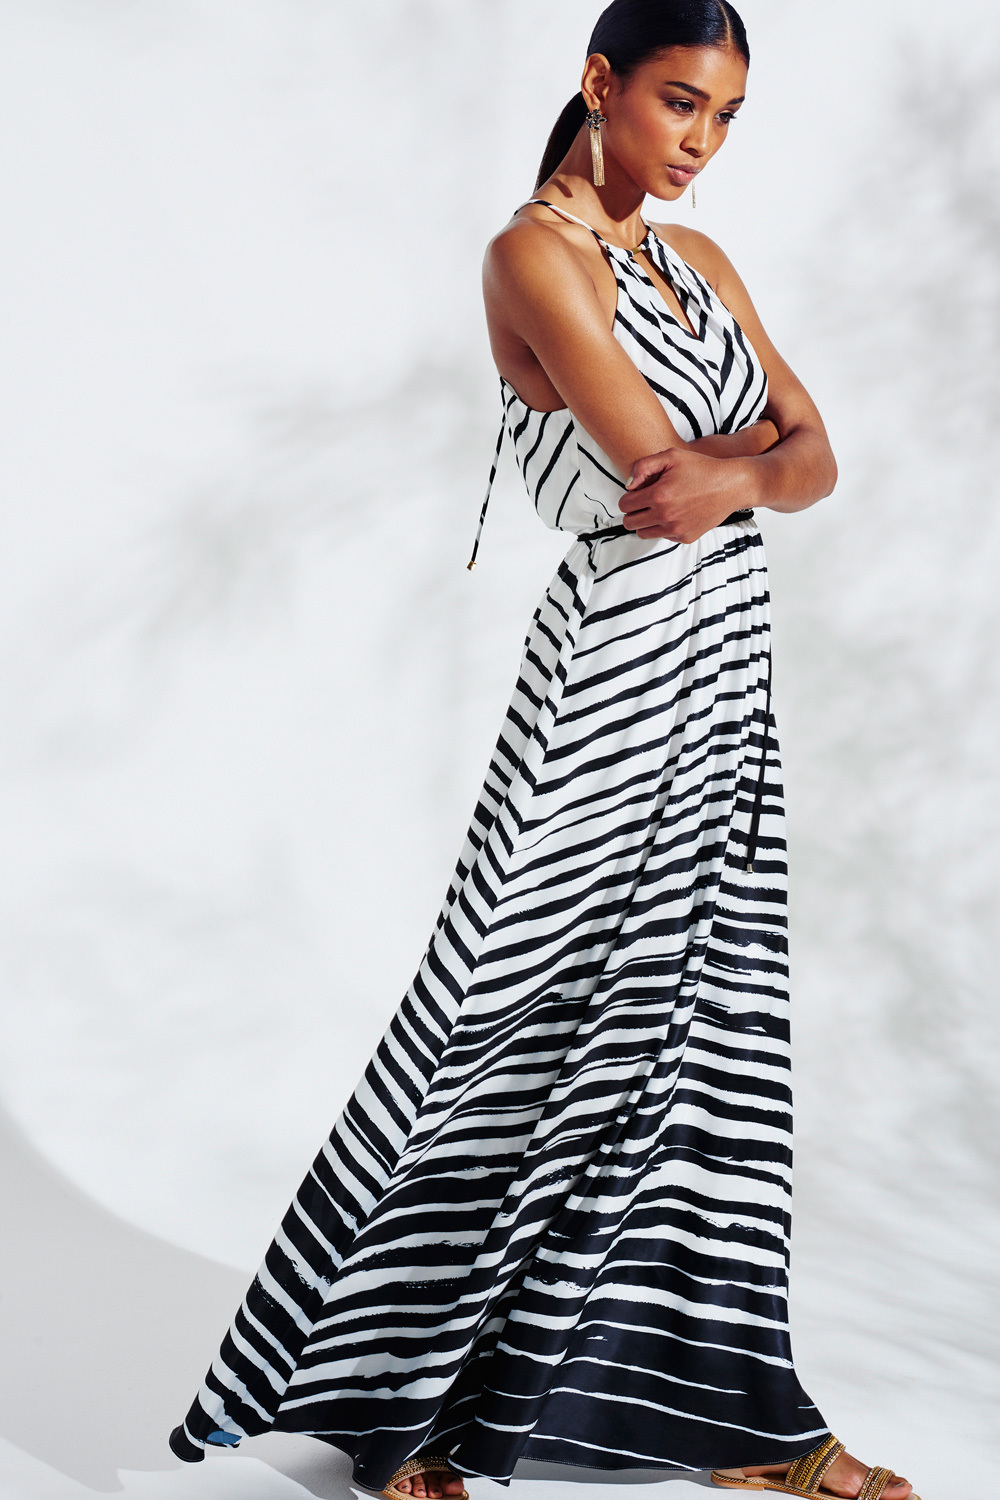 Marseille Stripe Maxi Dress - sleeve style: sleeveless; style: maxi dress; pattern: striped; neckline: low halter neck; secondary colour: white; predominant colour: black; occasions: evening; length: floor length; fit: body skimming; fibres: polyester/polyamide - 100%; sleeve length: sleeveless; pattern type: fabric; texture group: jersey - stretchy/drapey; multicoloured: multicoloured; season: a/w 2015; wardrobe: event